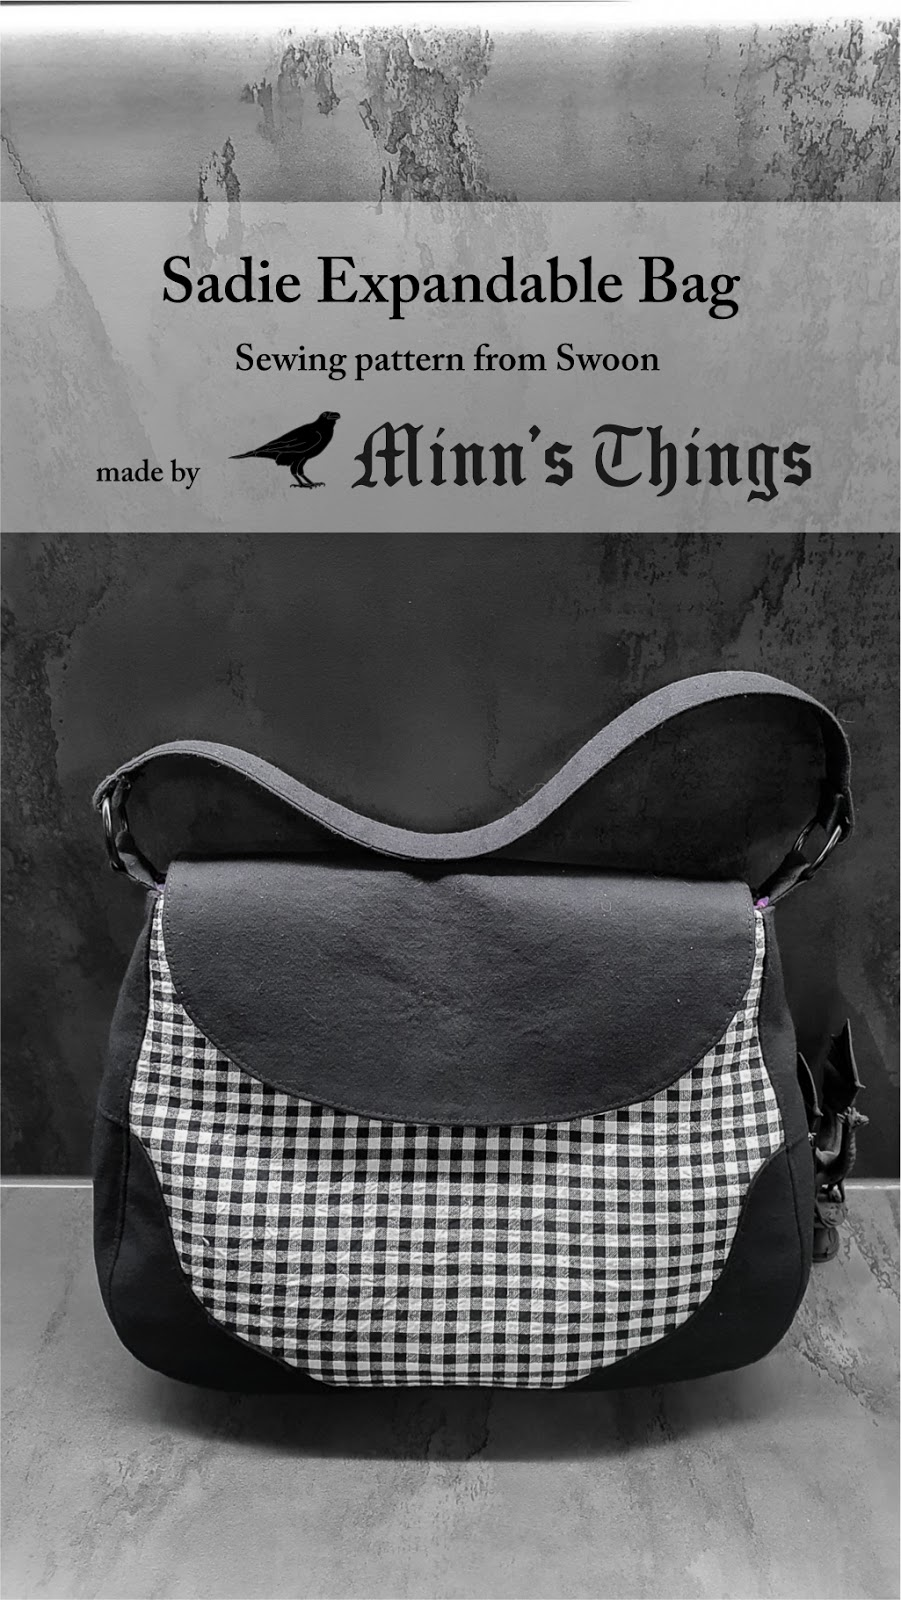 swoon sadie expandable bag sewing pattern minn's things pinterest